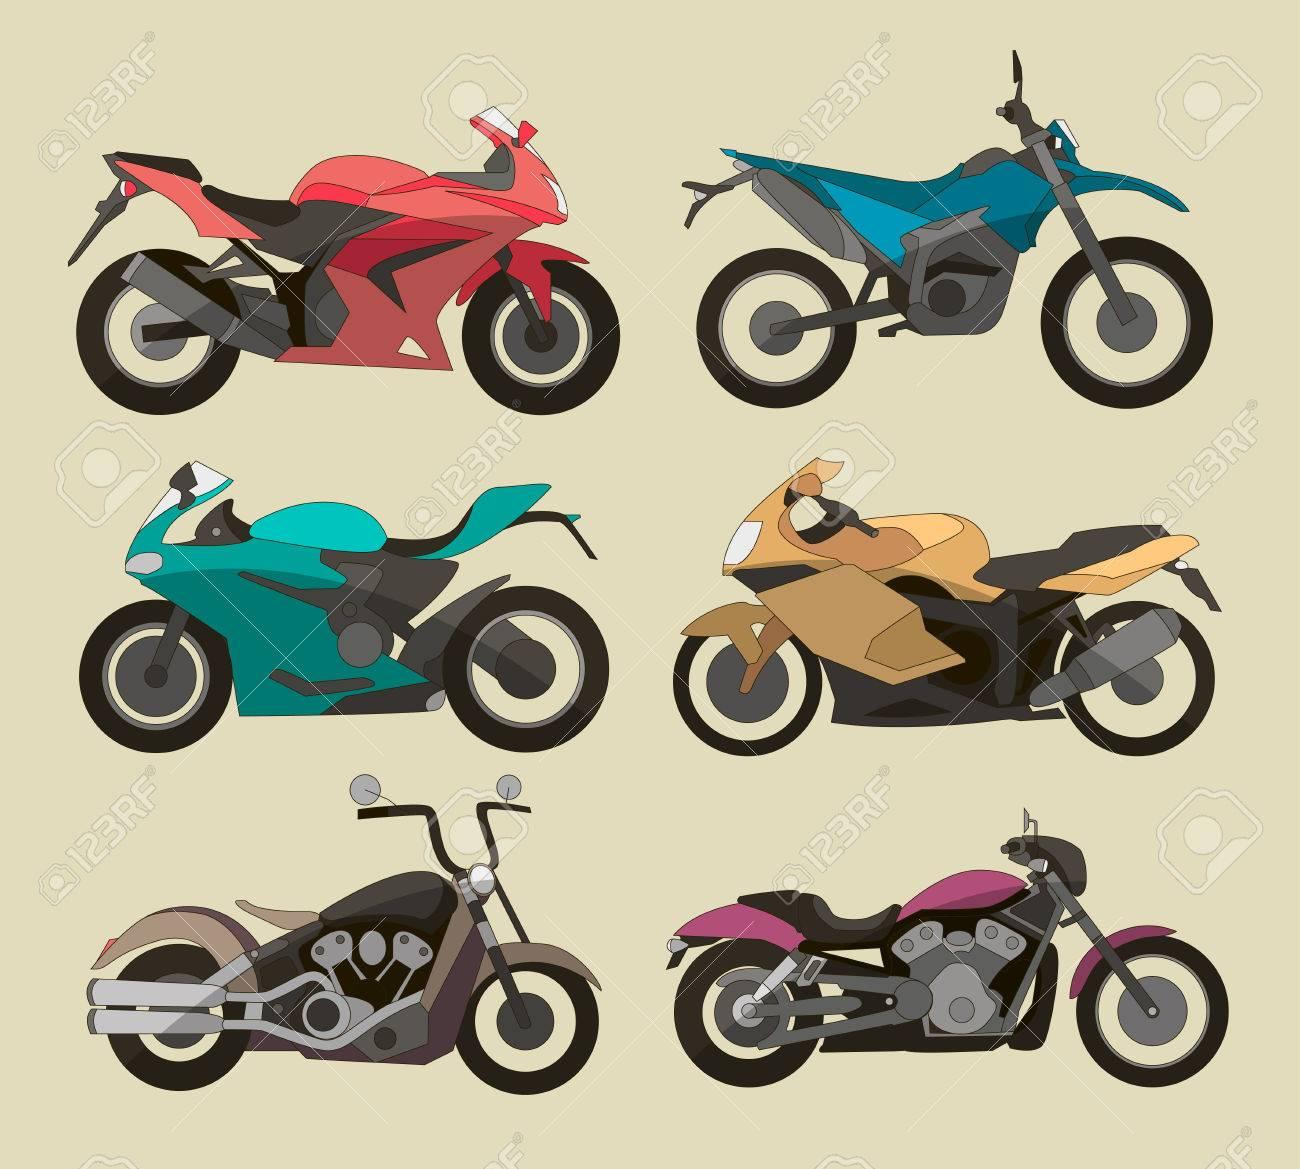 Motorcycle Icons Set In Flat Style Vector Illustrations Of Different Type Motorcycles Stock